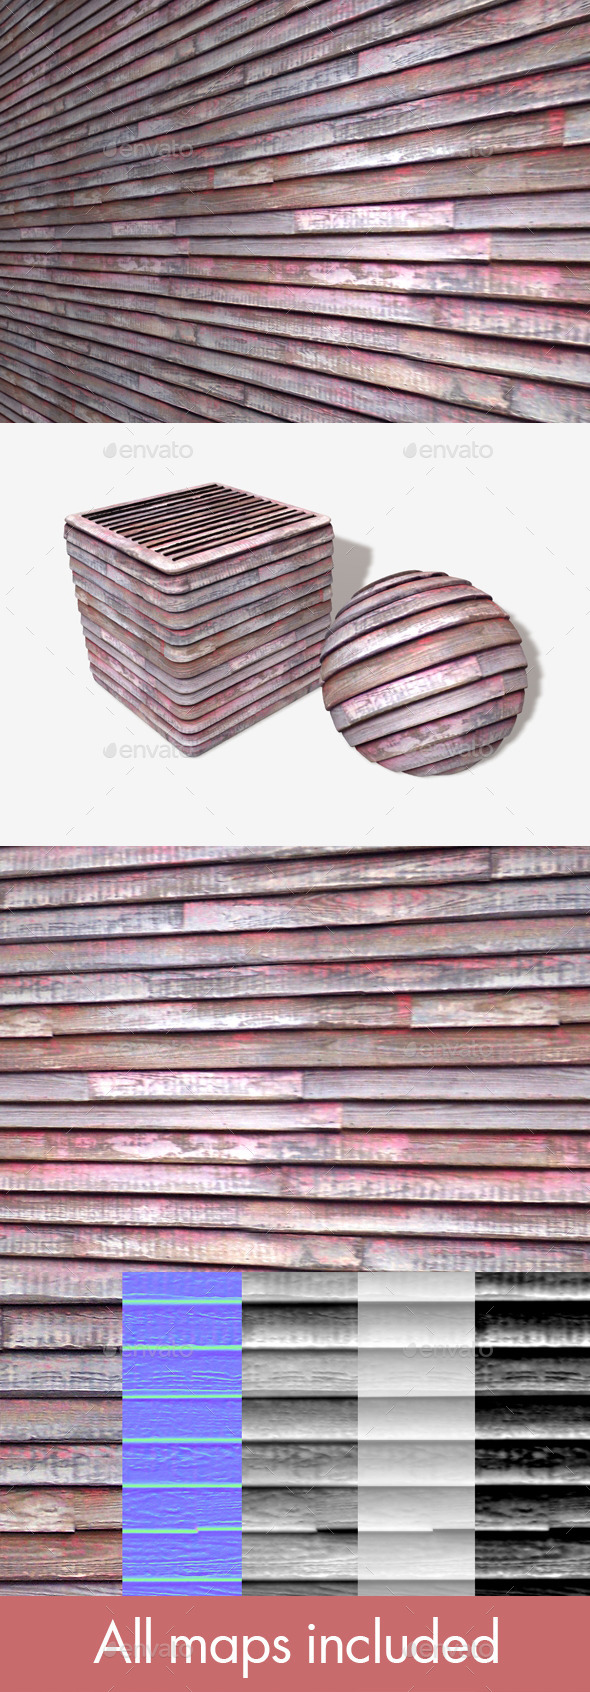 Weathered Painted Wood Seamless Texture - 3DOcean Item for Sale